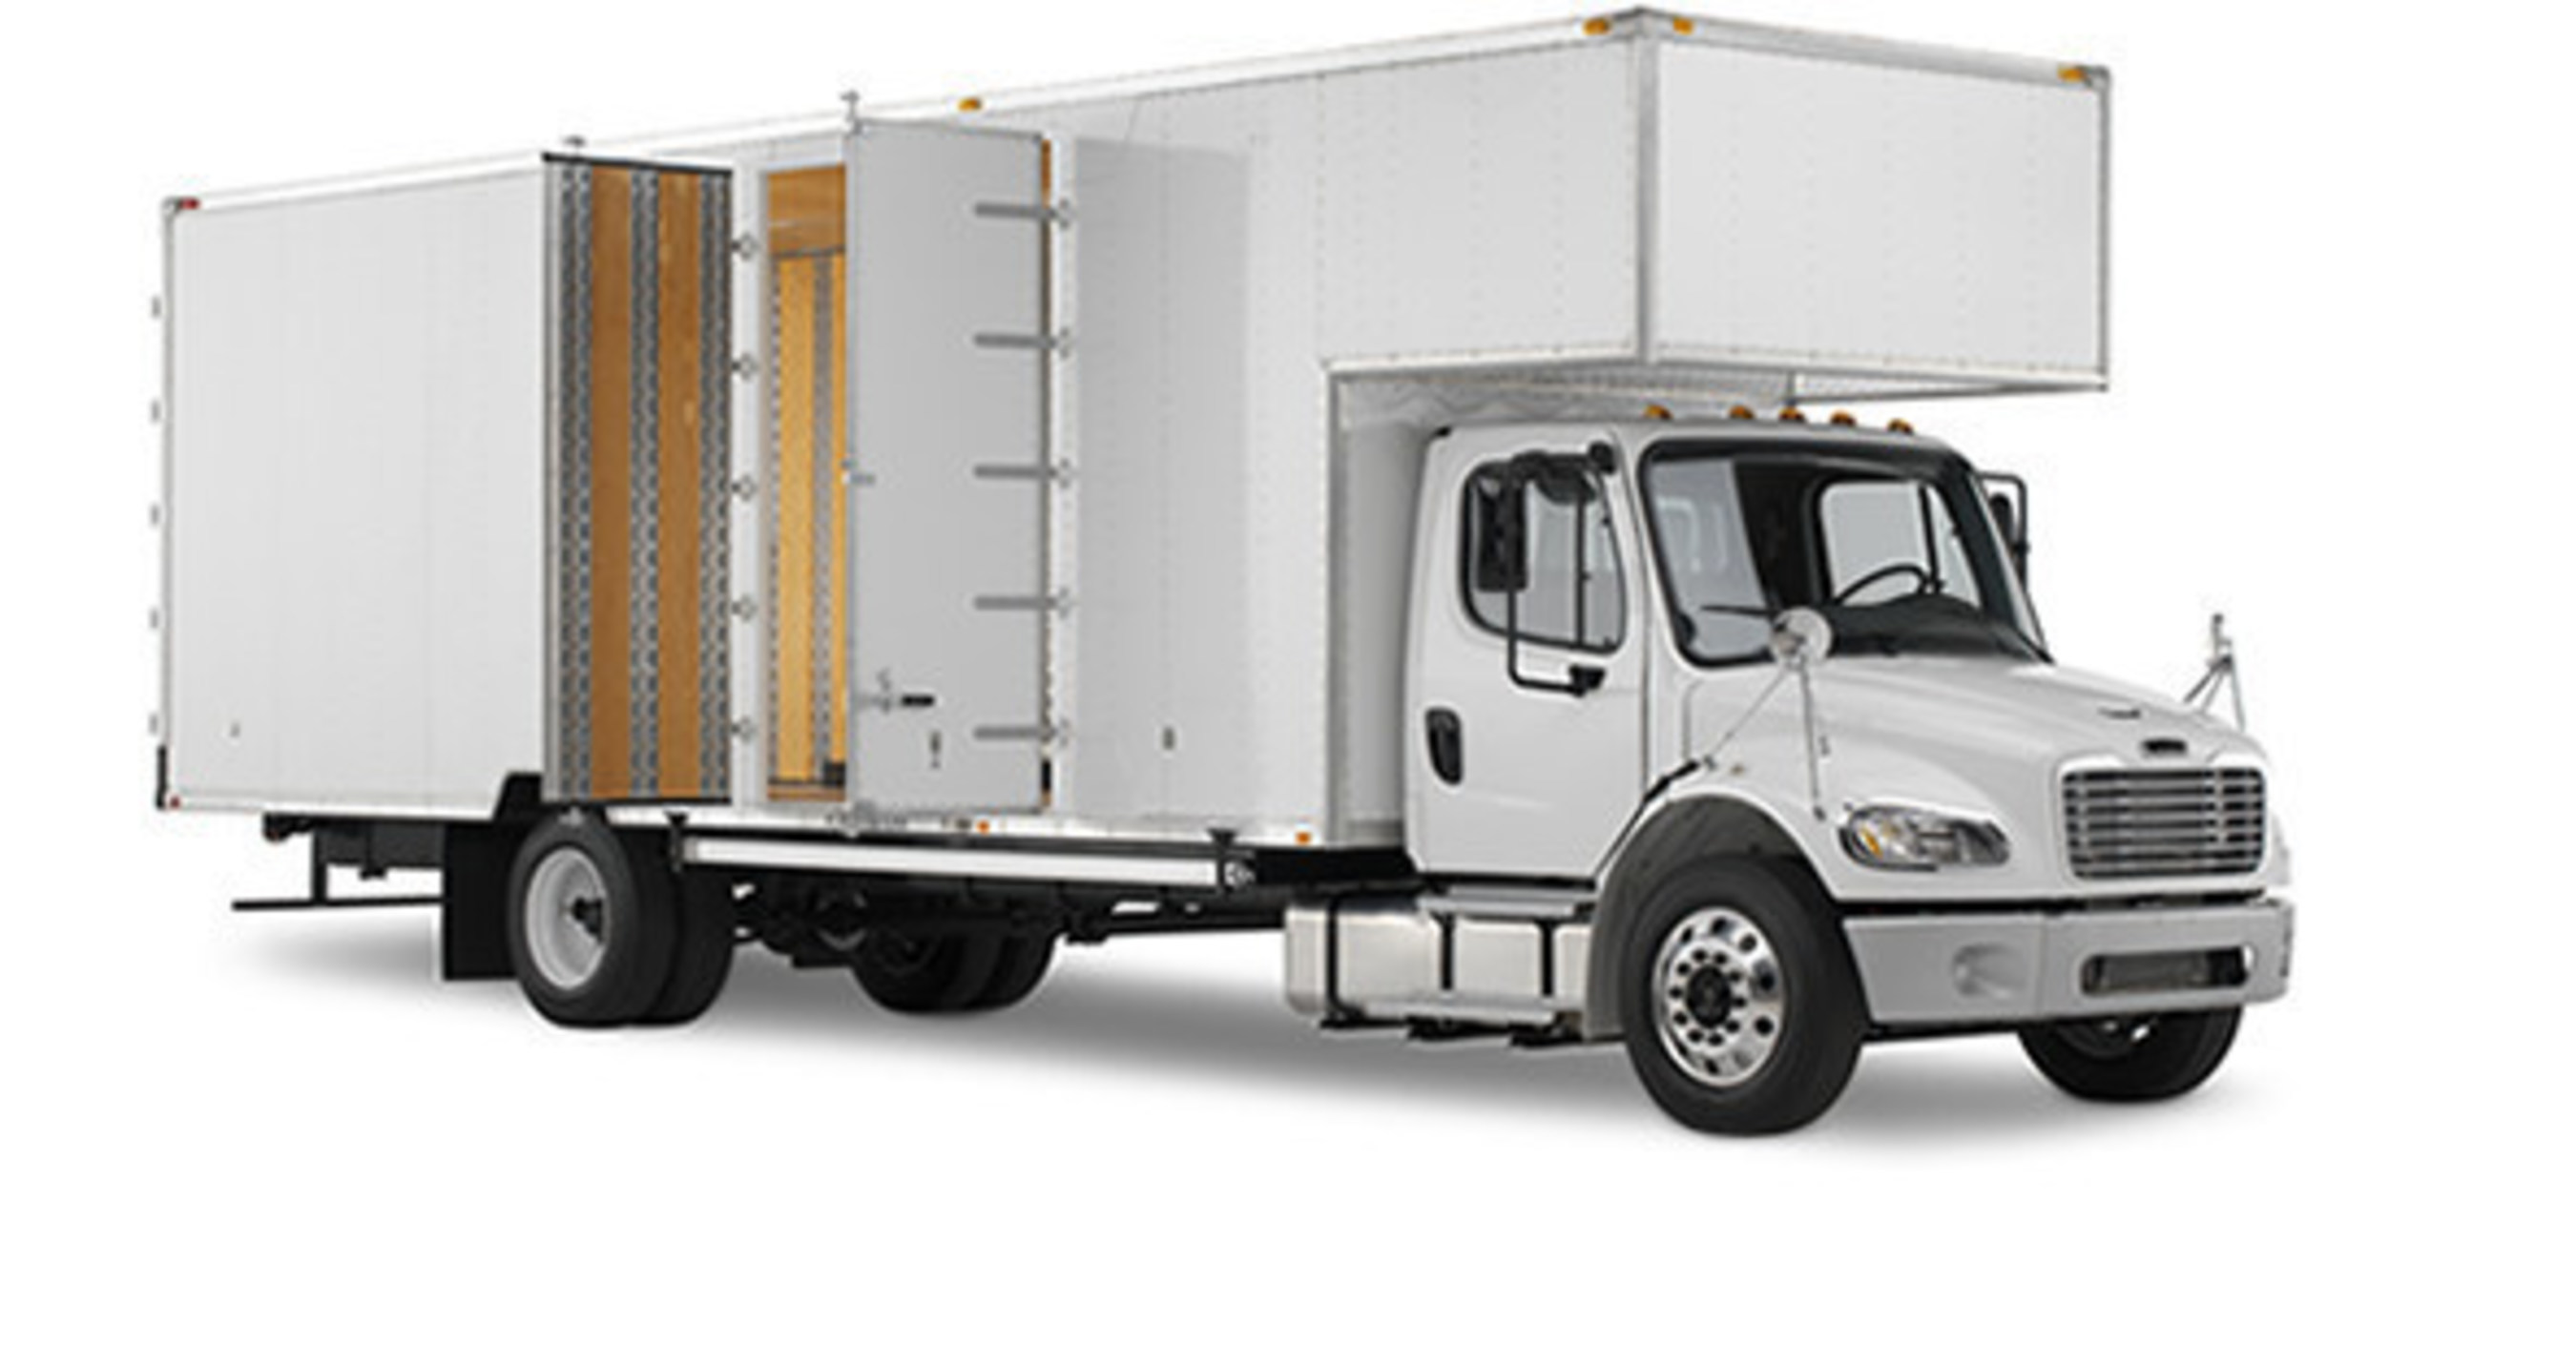 Movers and packers deals